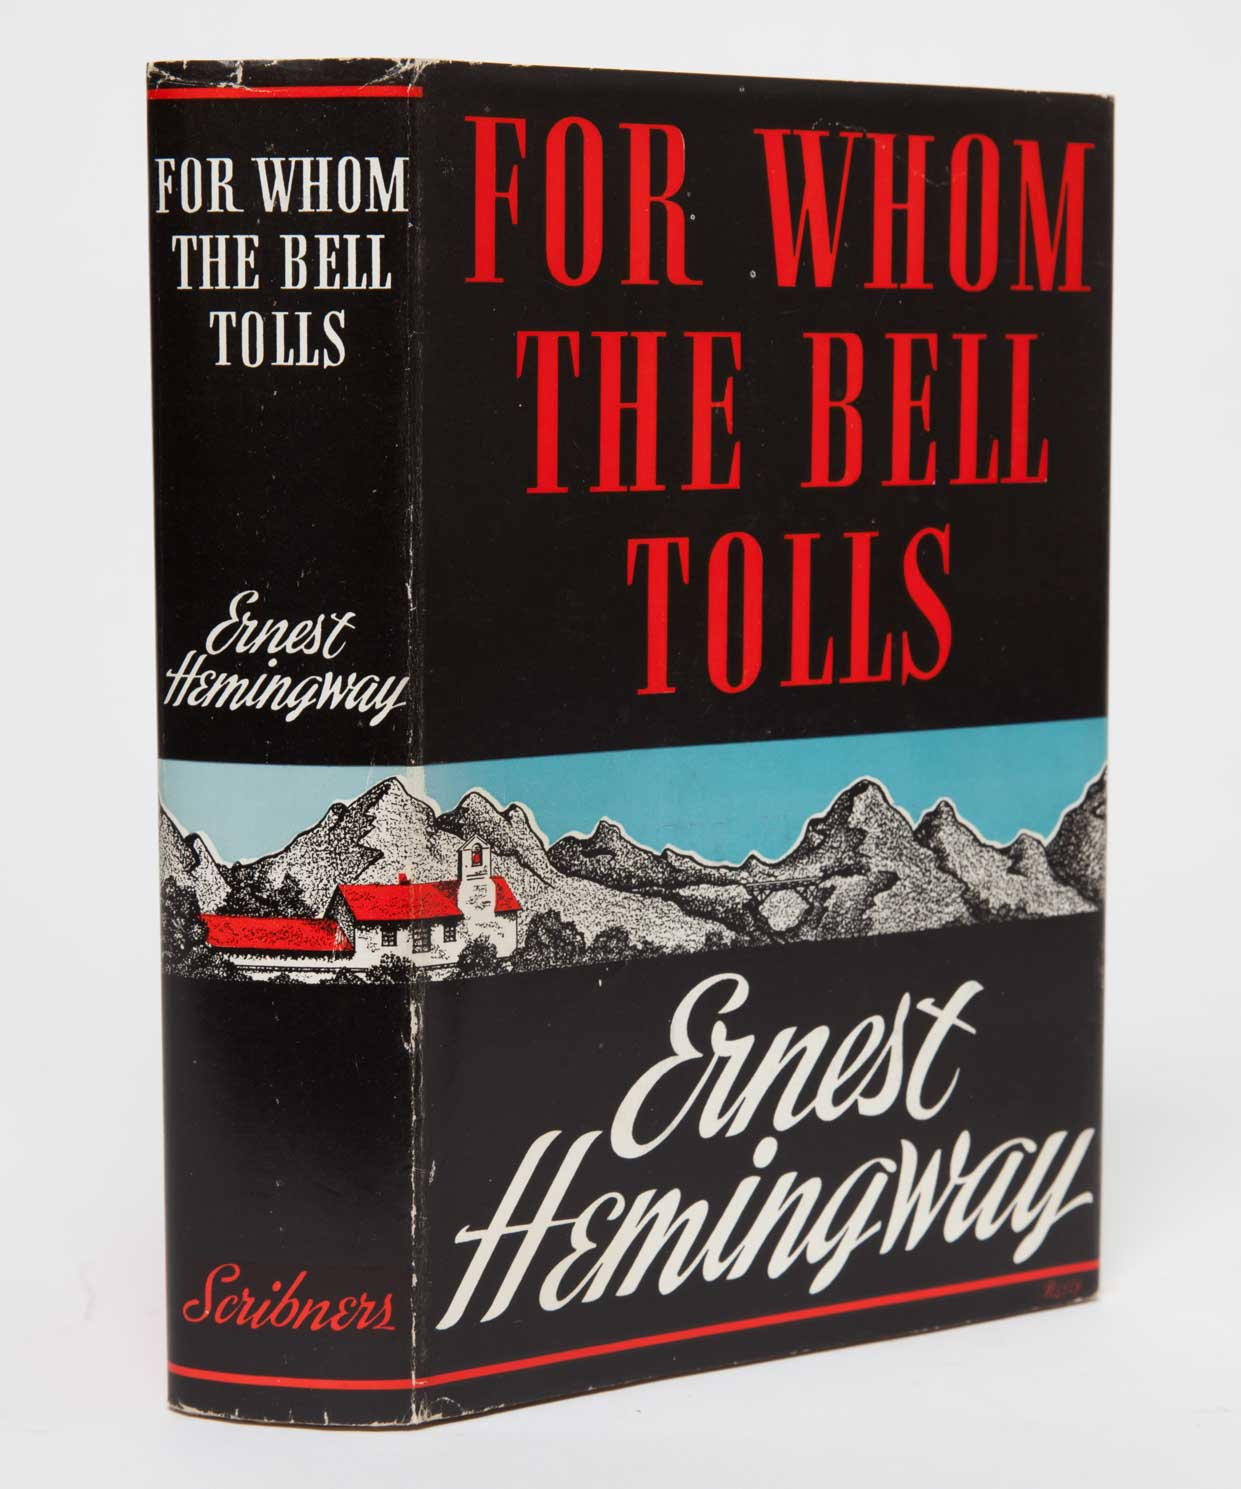 an experience of war in for whom the bell tolls by ernest hemingway Recommended citation carter, natalie always something of it remains: sexual trauma in ernest hemingway's for whom the bell tolls war, literature & the arts 251 him to a milan hospital for half a year, an experience which became the thinly indeed, for whom the bell tollsis perhaps one of the truest war.